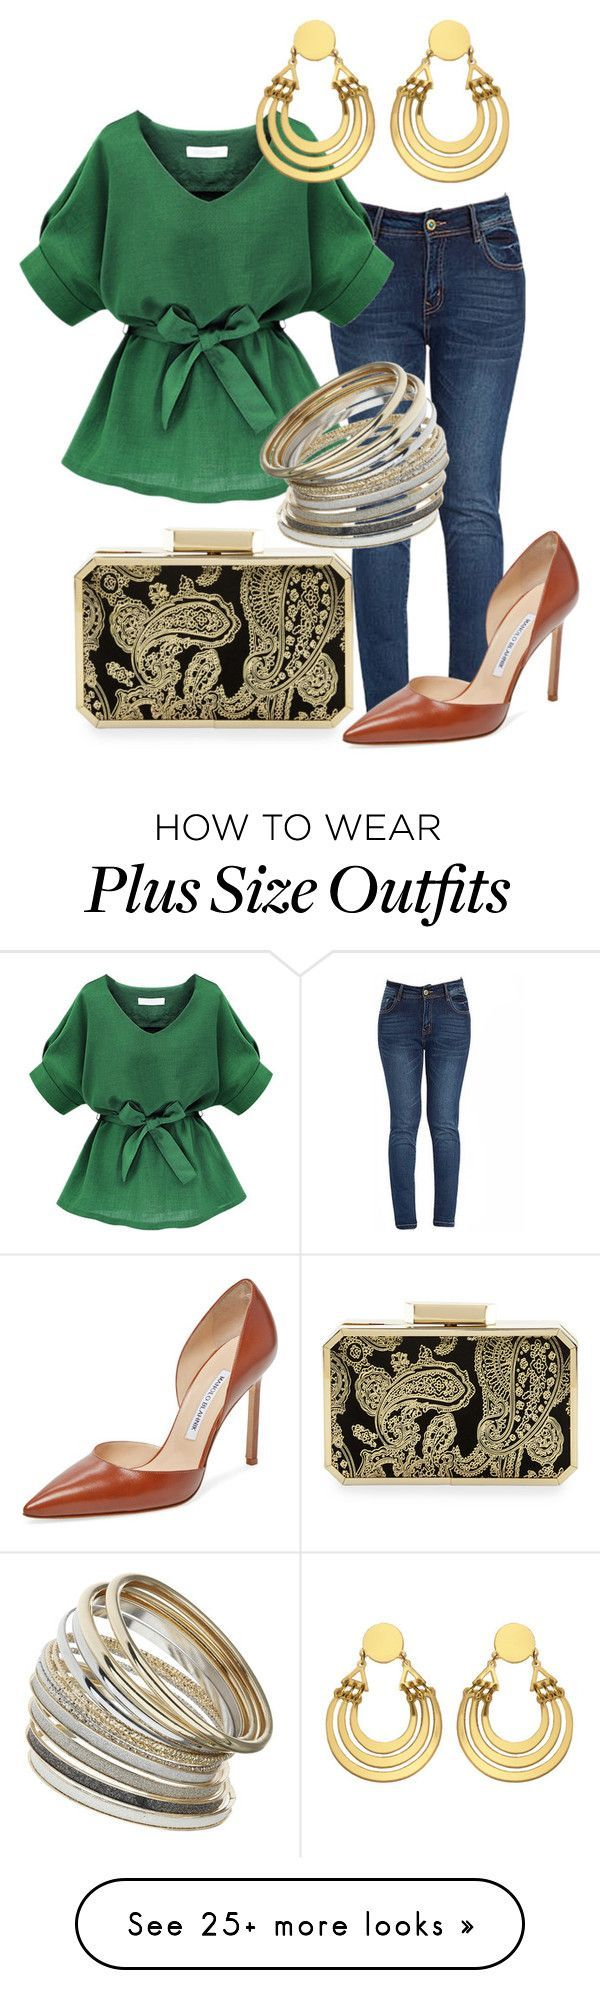 """New York Avenue"" by sevenspringswellness on Polyvore featuring Badgley Mischka, Miss Selfridge, Manolo Blahnik, women's clothing, women, female, woman, misses and juniors Nail Design, Nail Art, Nail Salon, Irvine, Newport Beach"